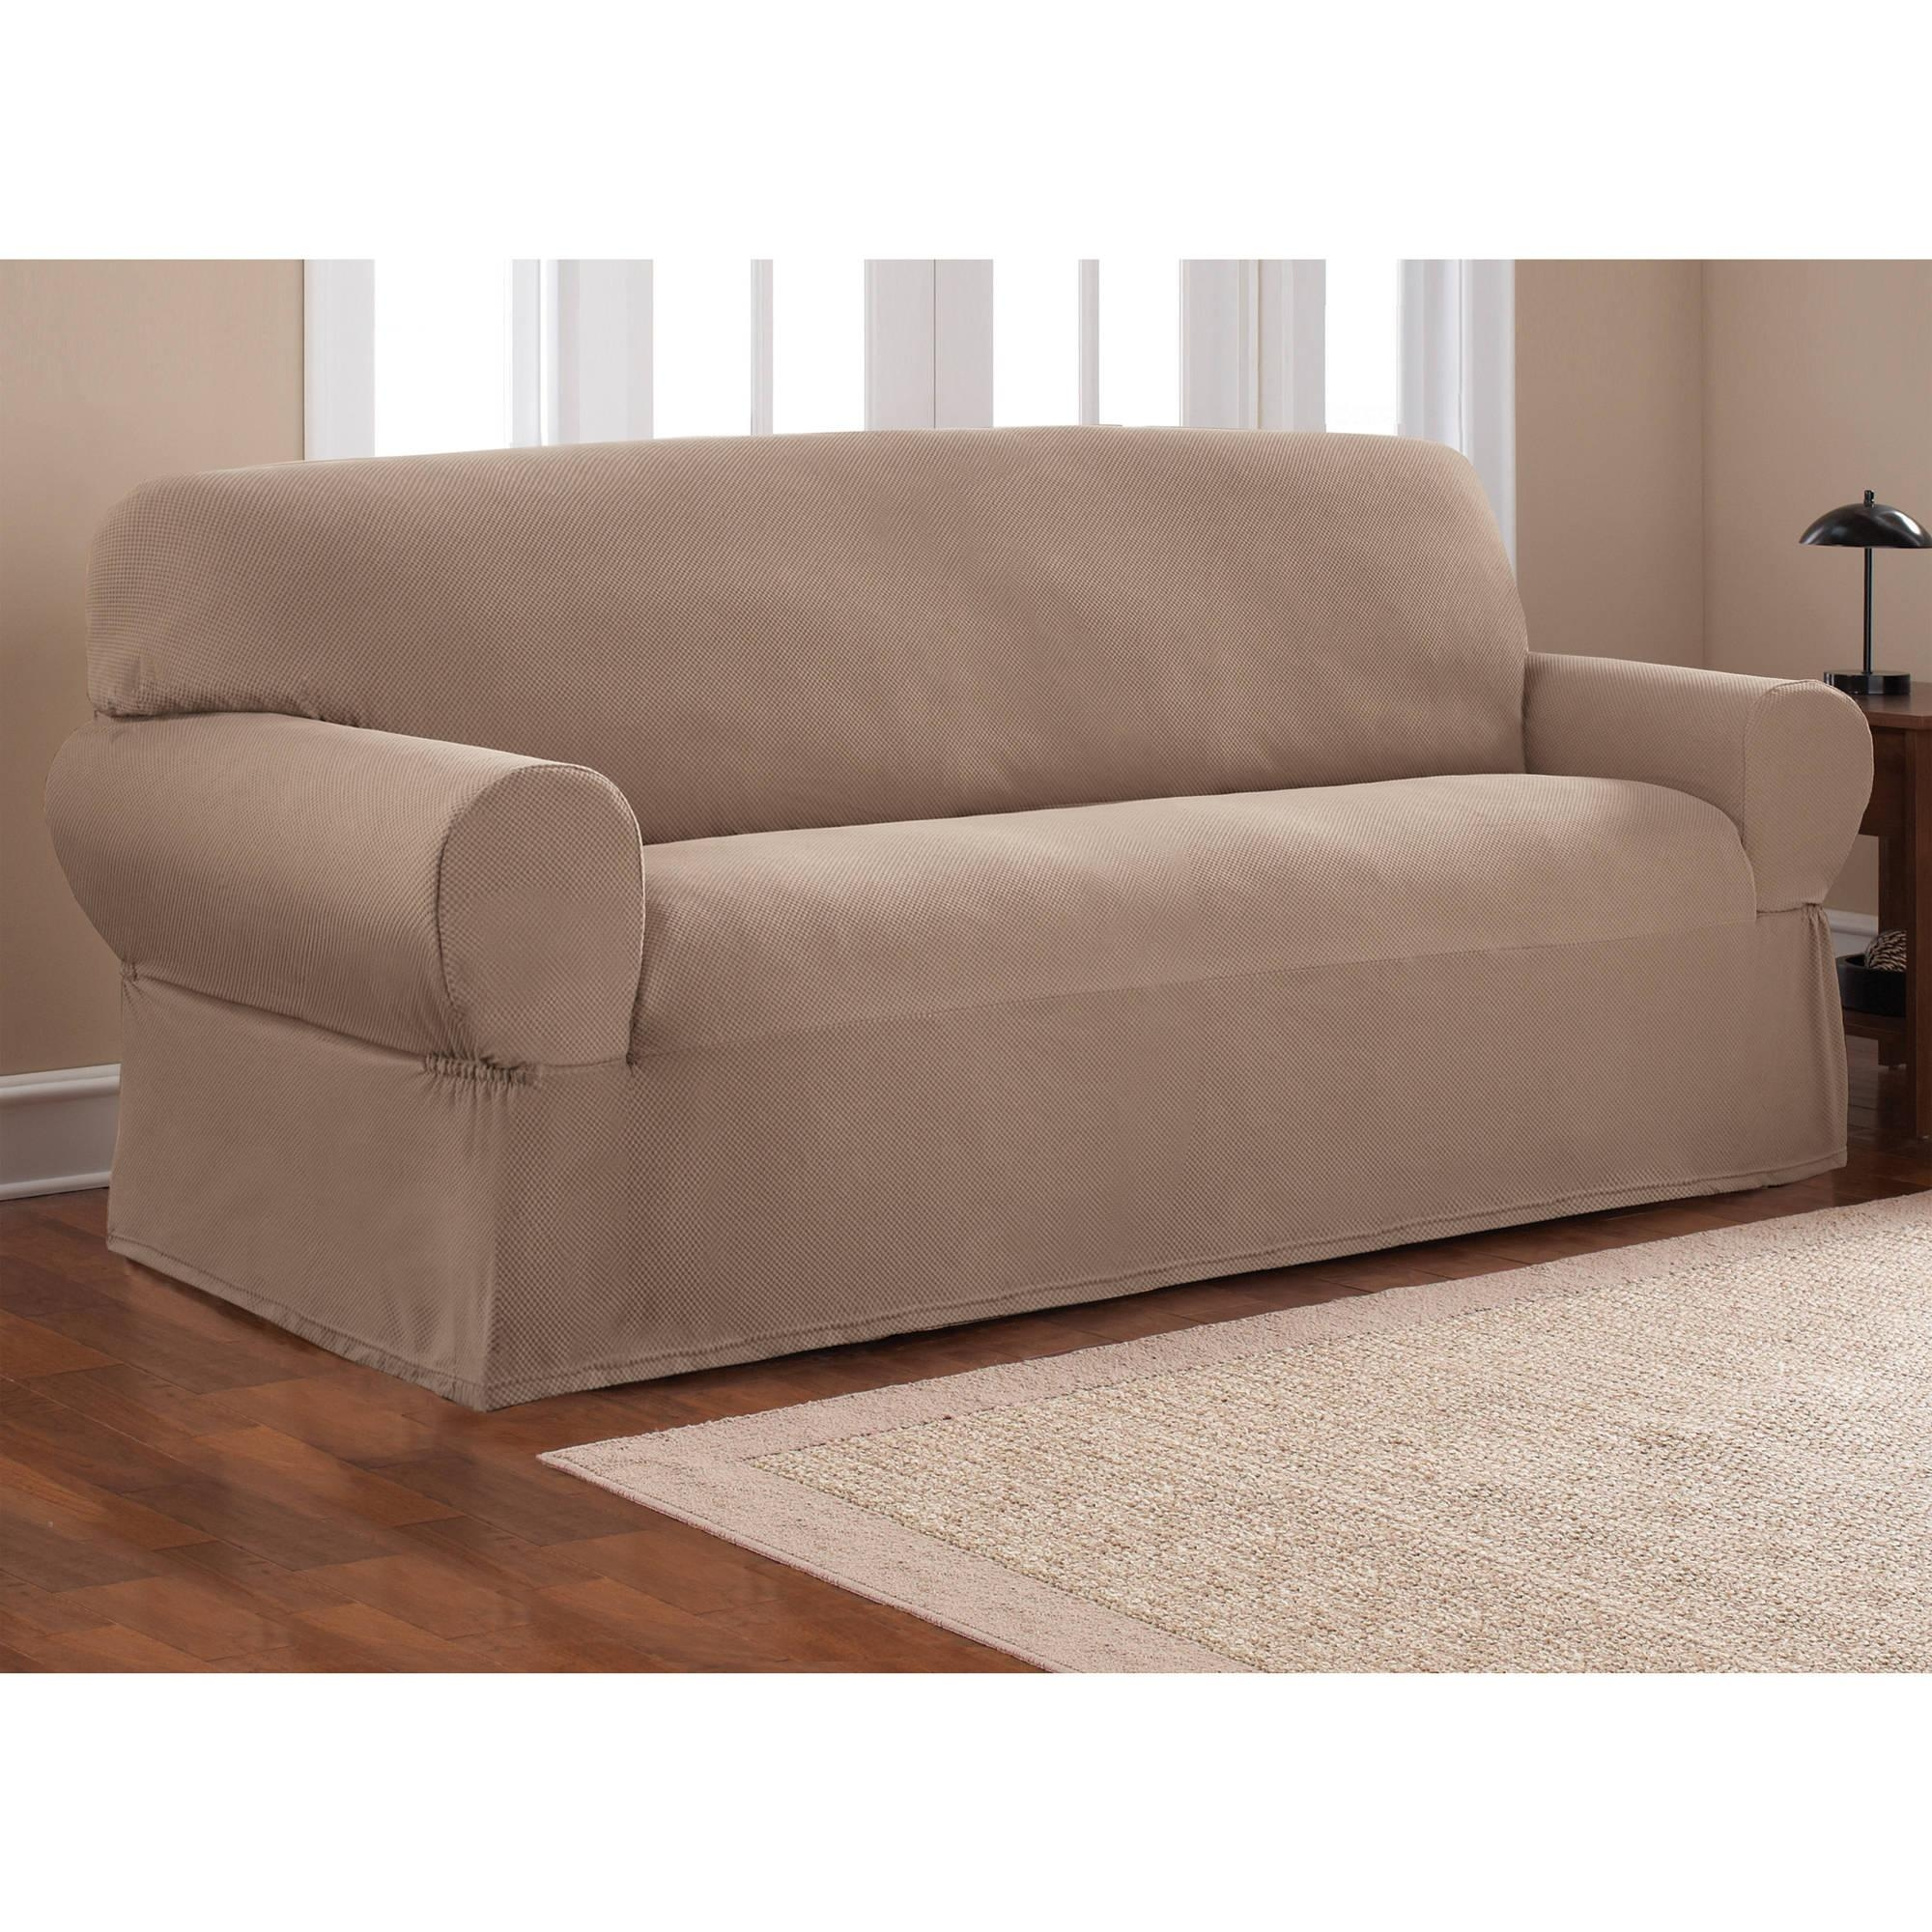 Furniture: Creates Clean Foundation That Complements Decorating With Slipcover For Recliner Sofas (Image 8 of 20)